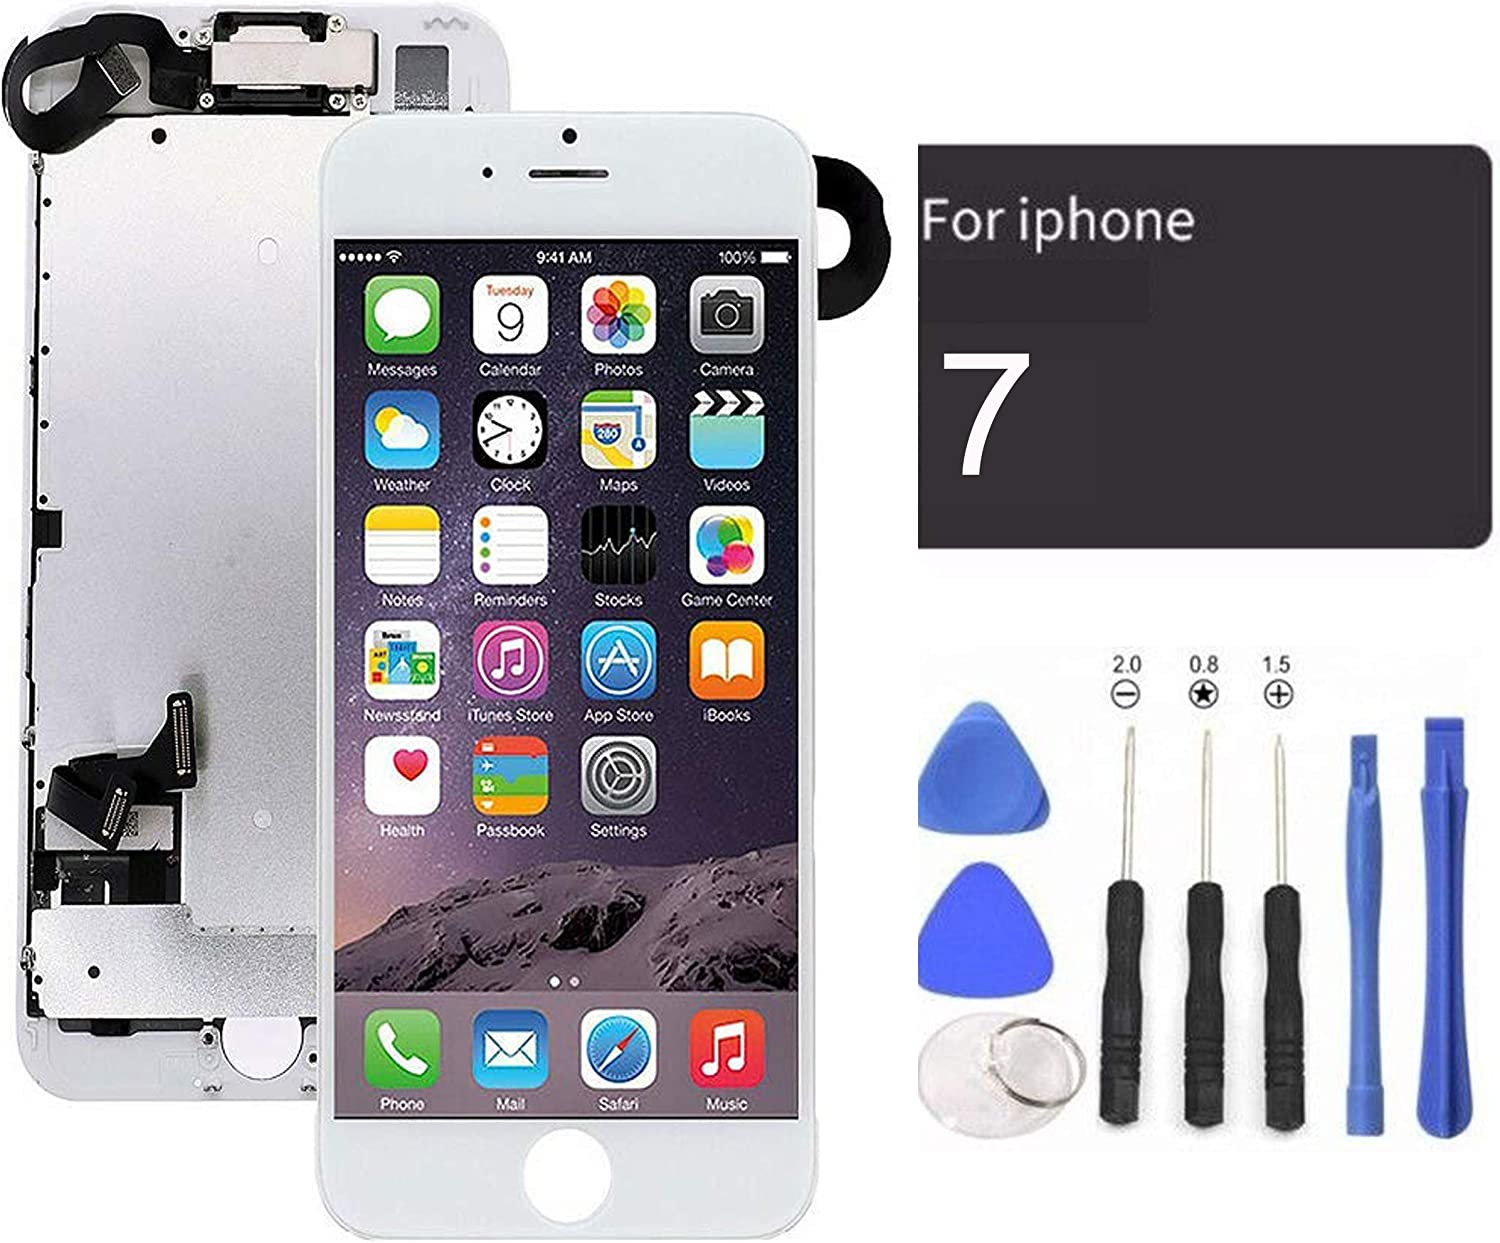 passionTR White LCD Screen Replacement for iPhone 7 Plus 5.5 Inch with Camera Ear Speaker Proximity Sensor Full Complete Assembly Digitizer Display with Repair Tool kit